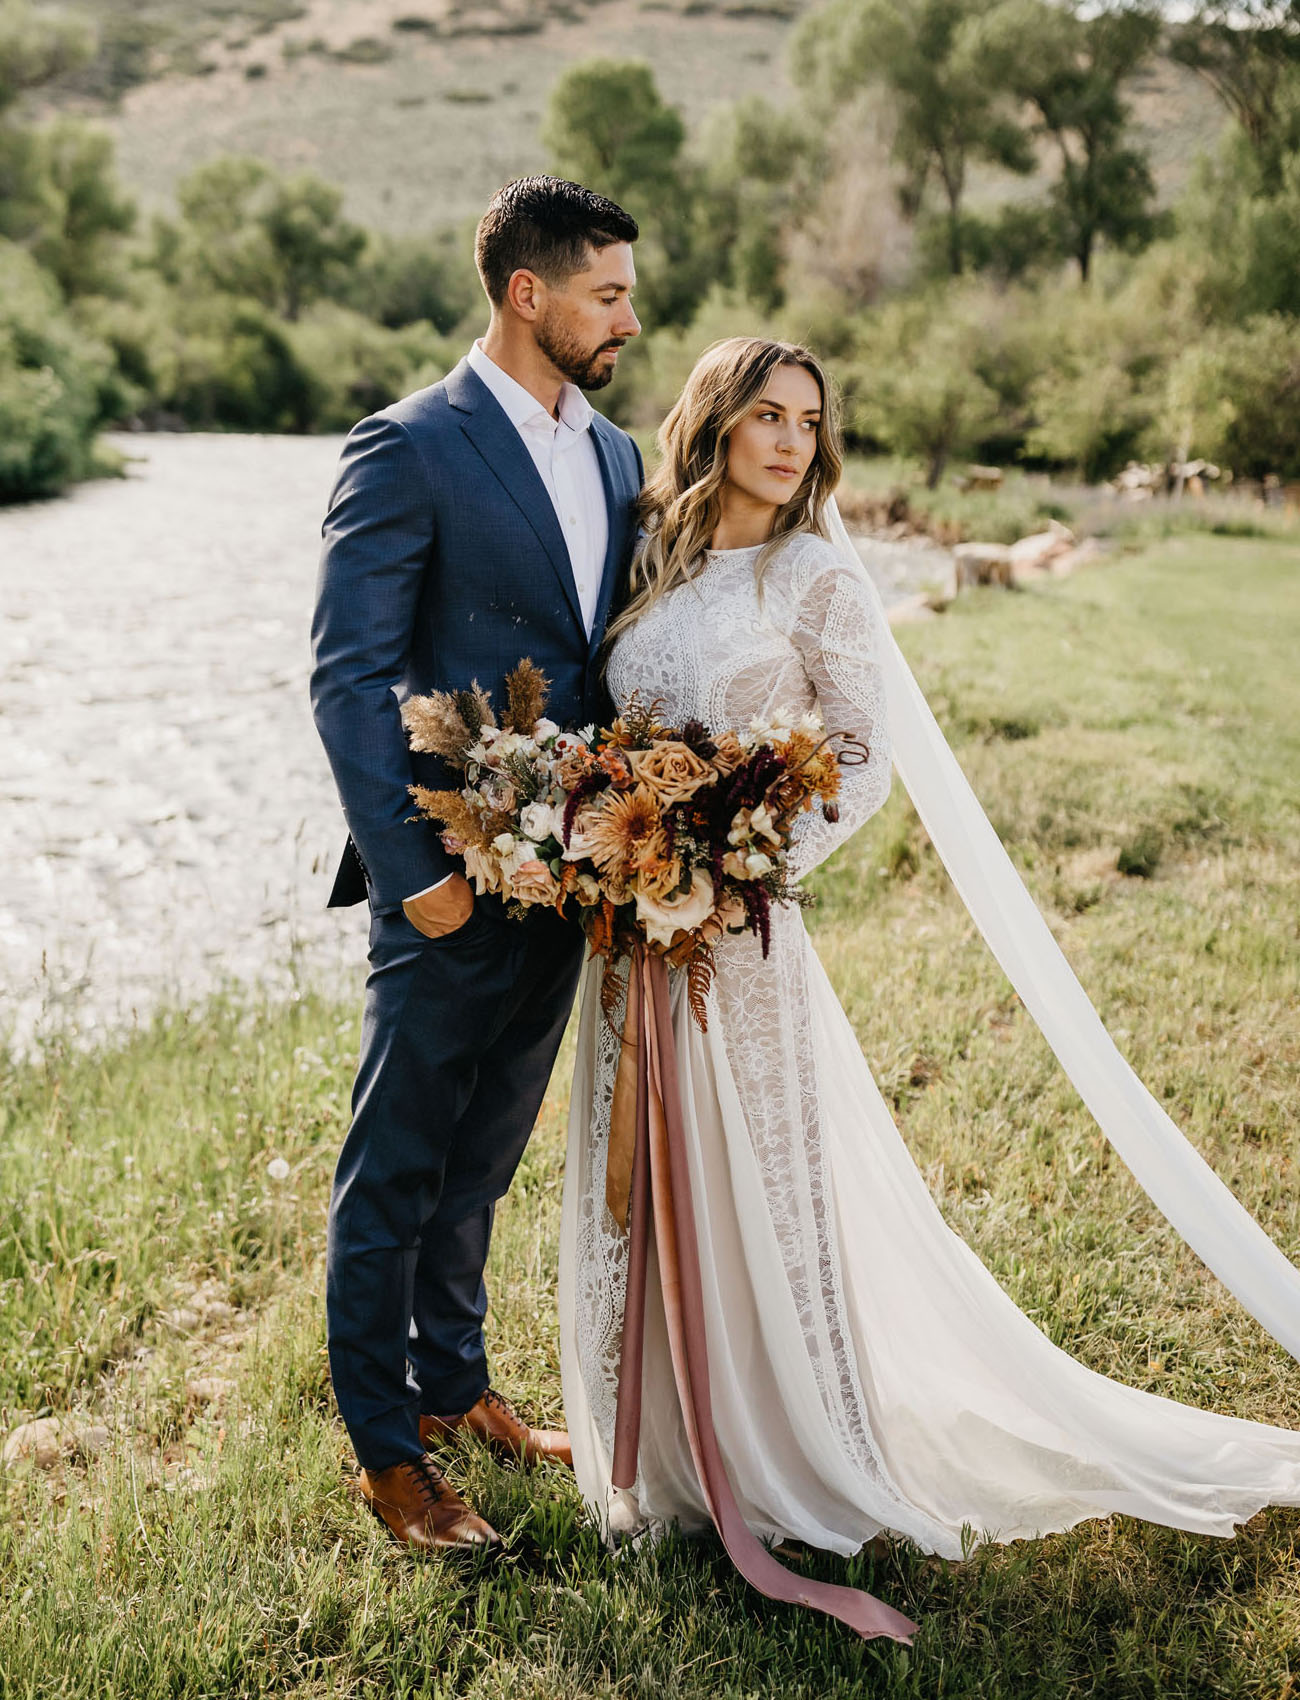 The wedding dress was a lace A line one, with long sleeves, a cutout back and a train